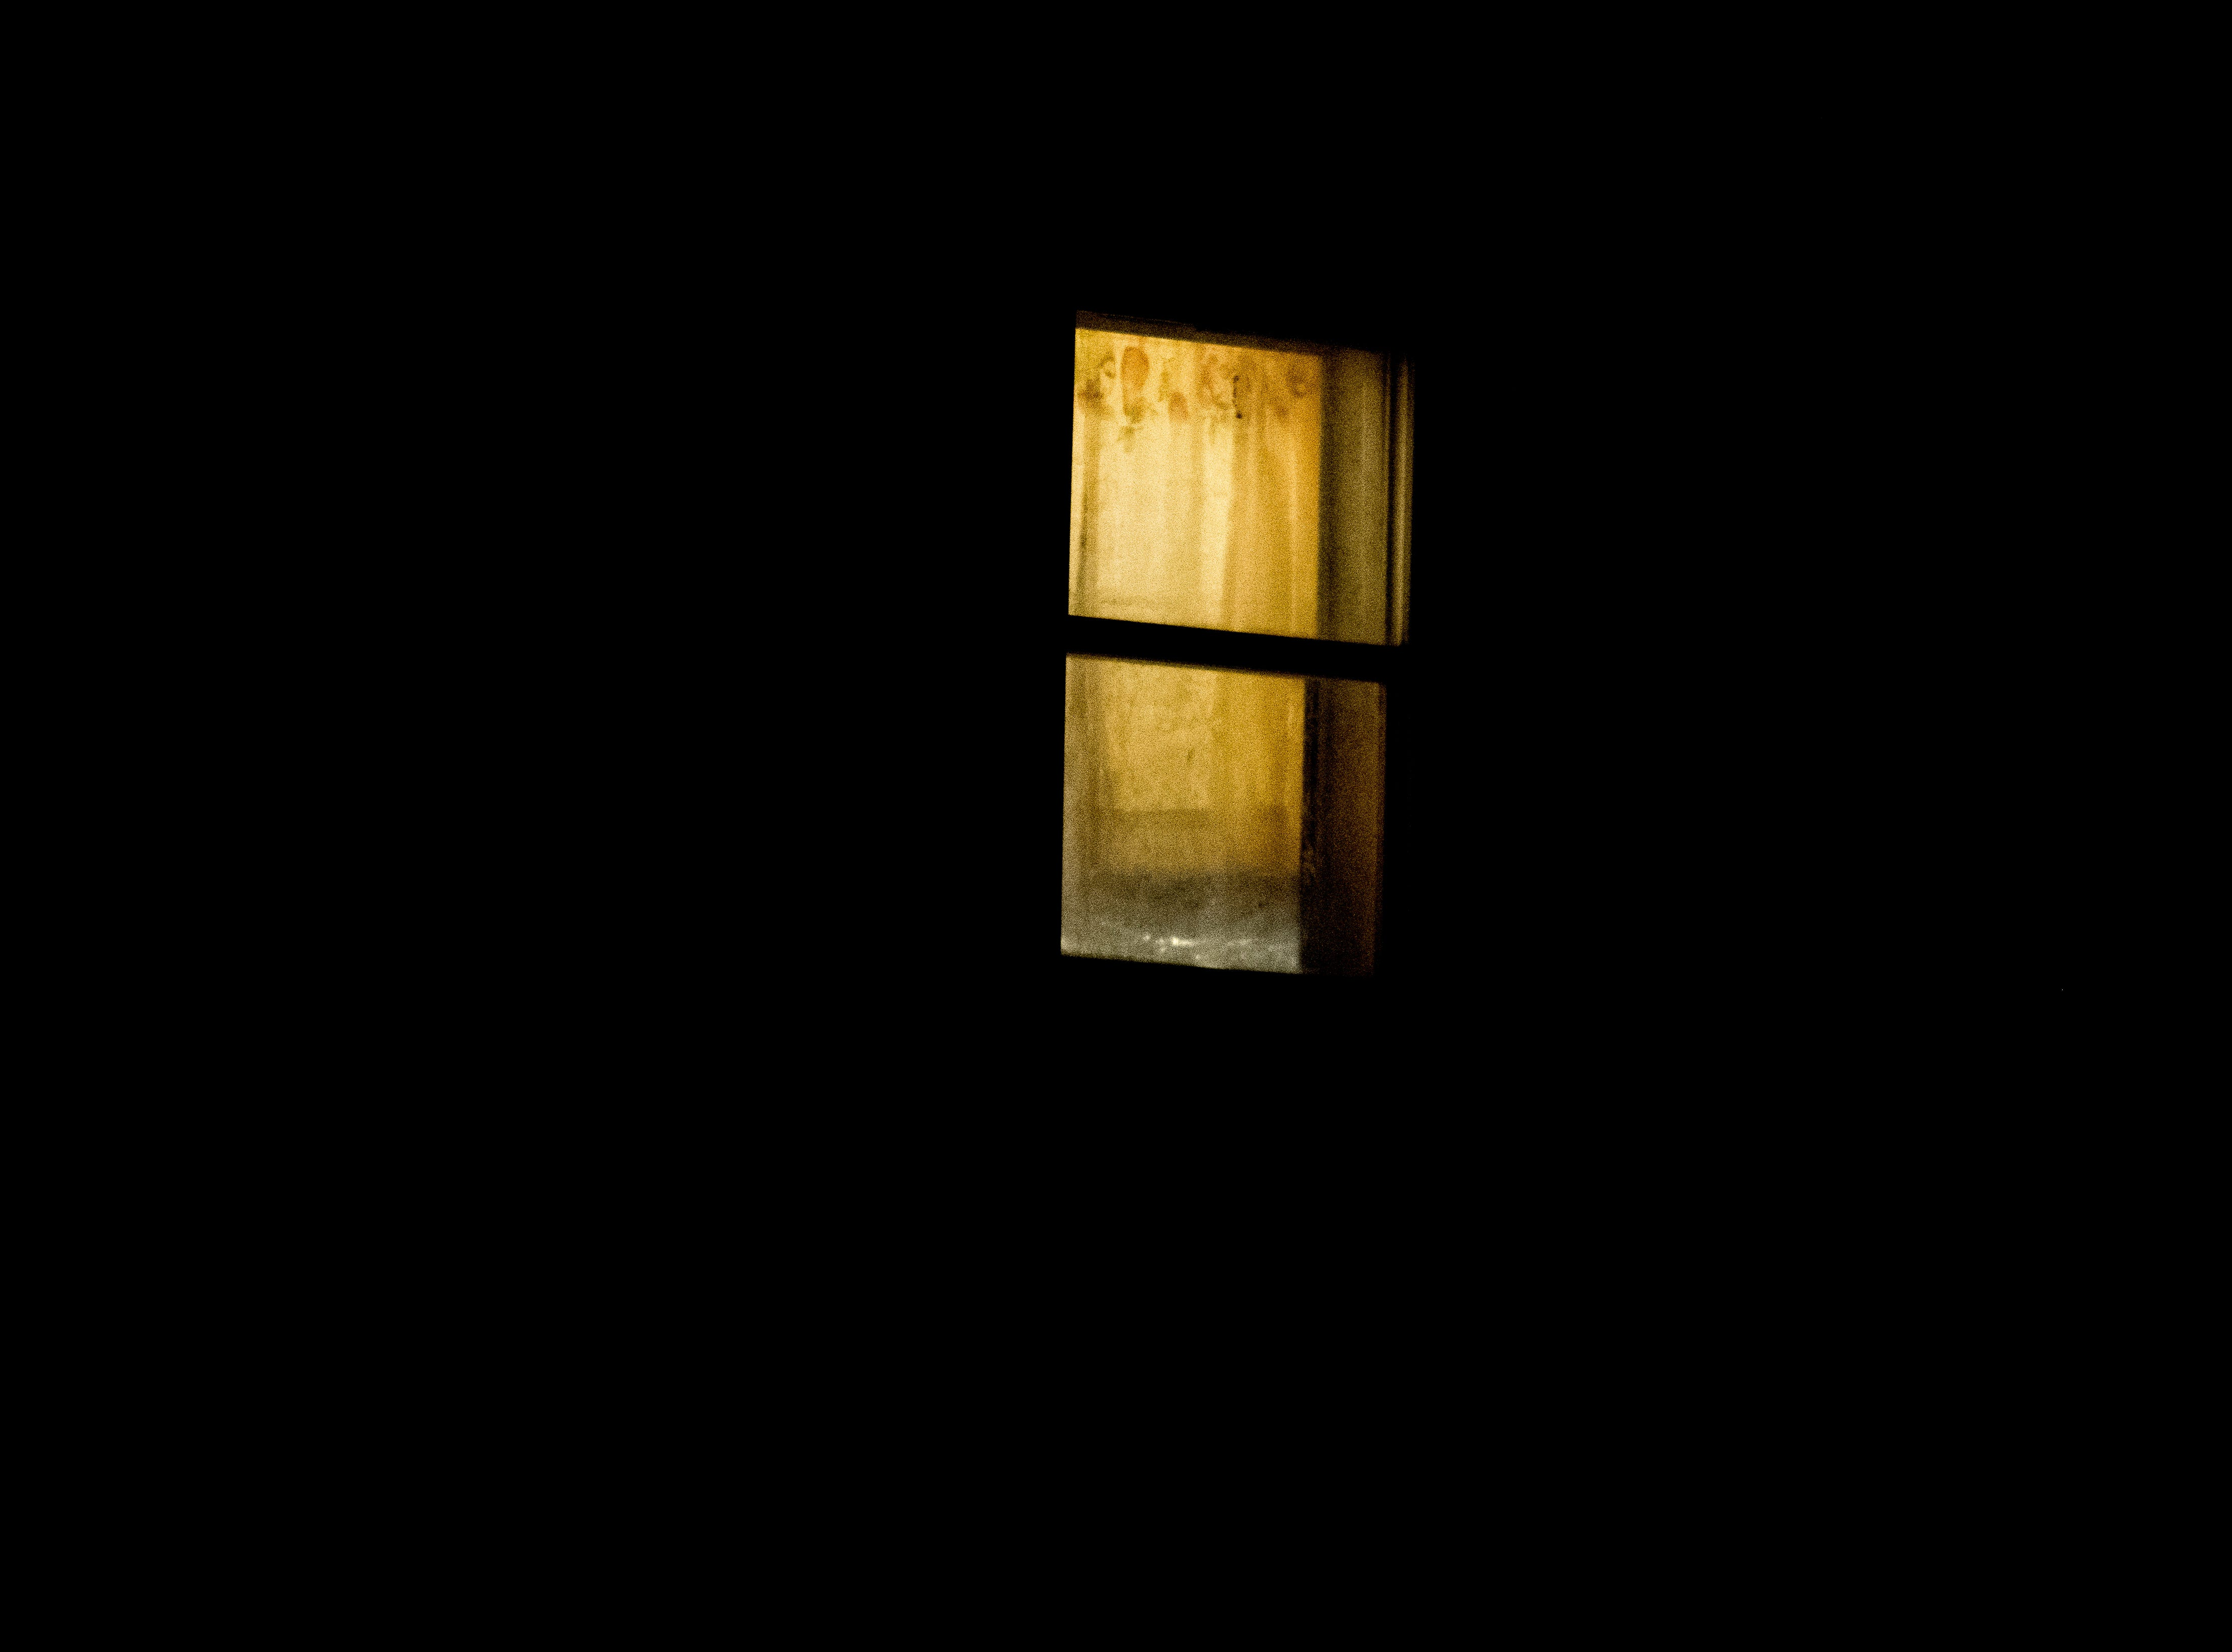 A window of the home where the shooting occured at the scene of a shooting on Forest Edge Way in Knoxville, Tennessee on Saturday, November 10, 2018. One victim was confirmed dead at the scene and a second injured.